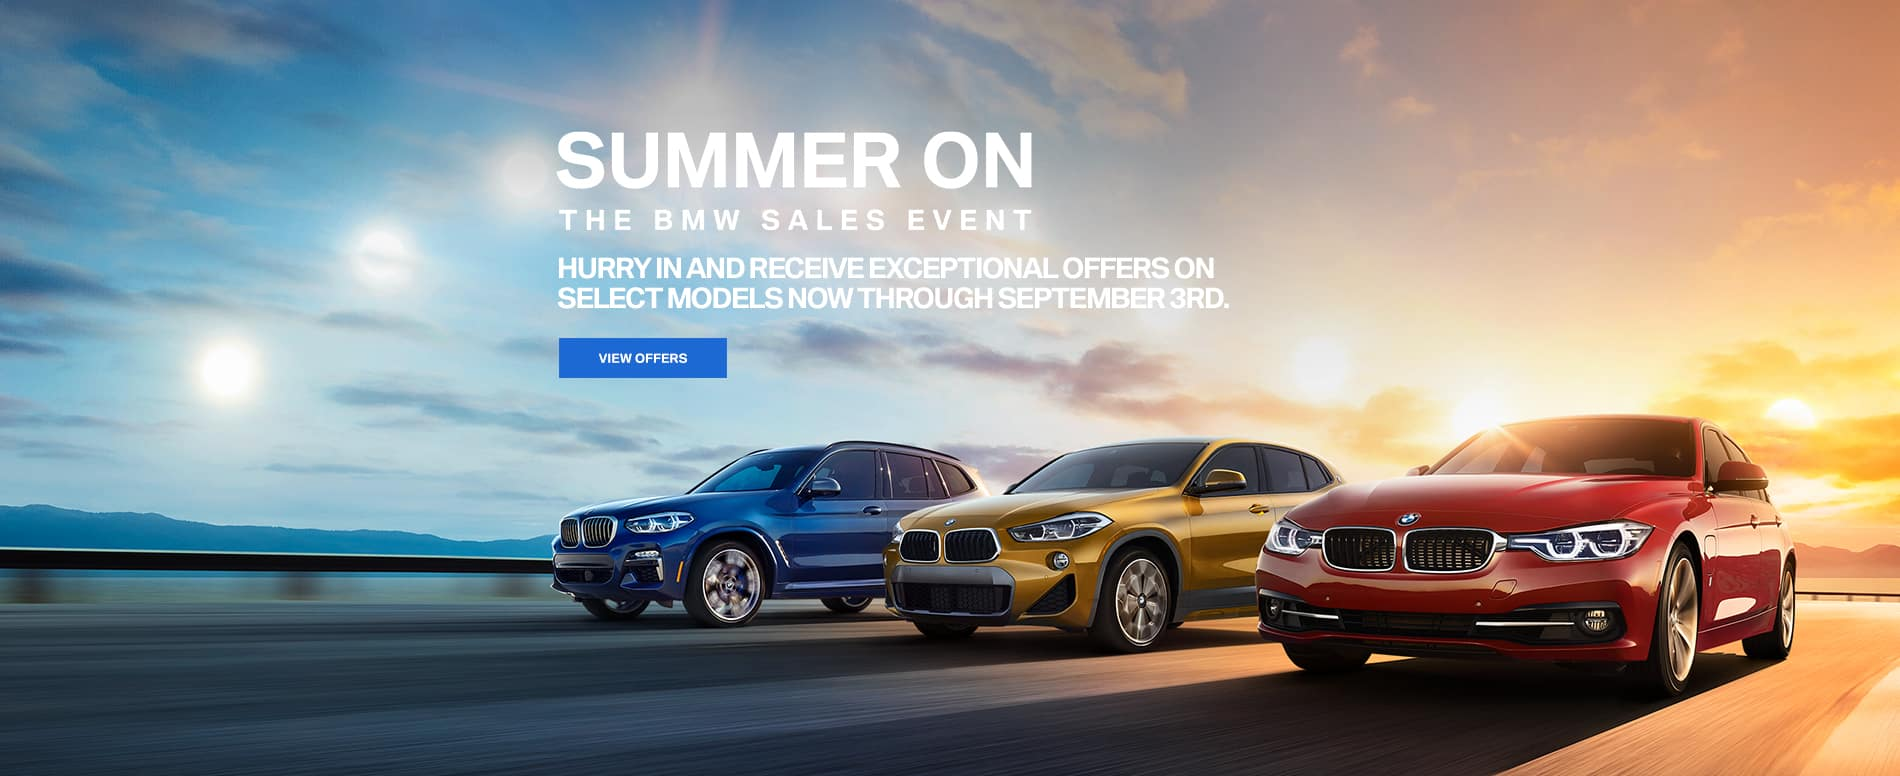 Best Car Dealerships In Dallas Fort Worth Cars Image 2018